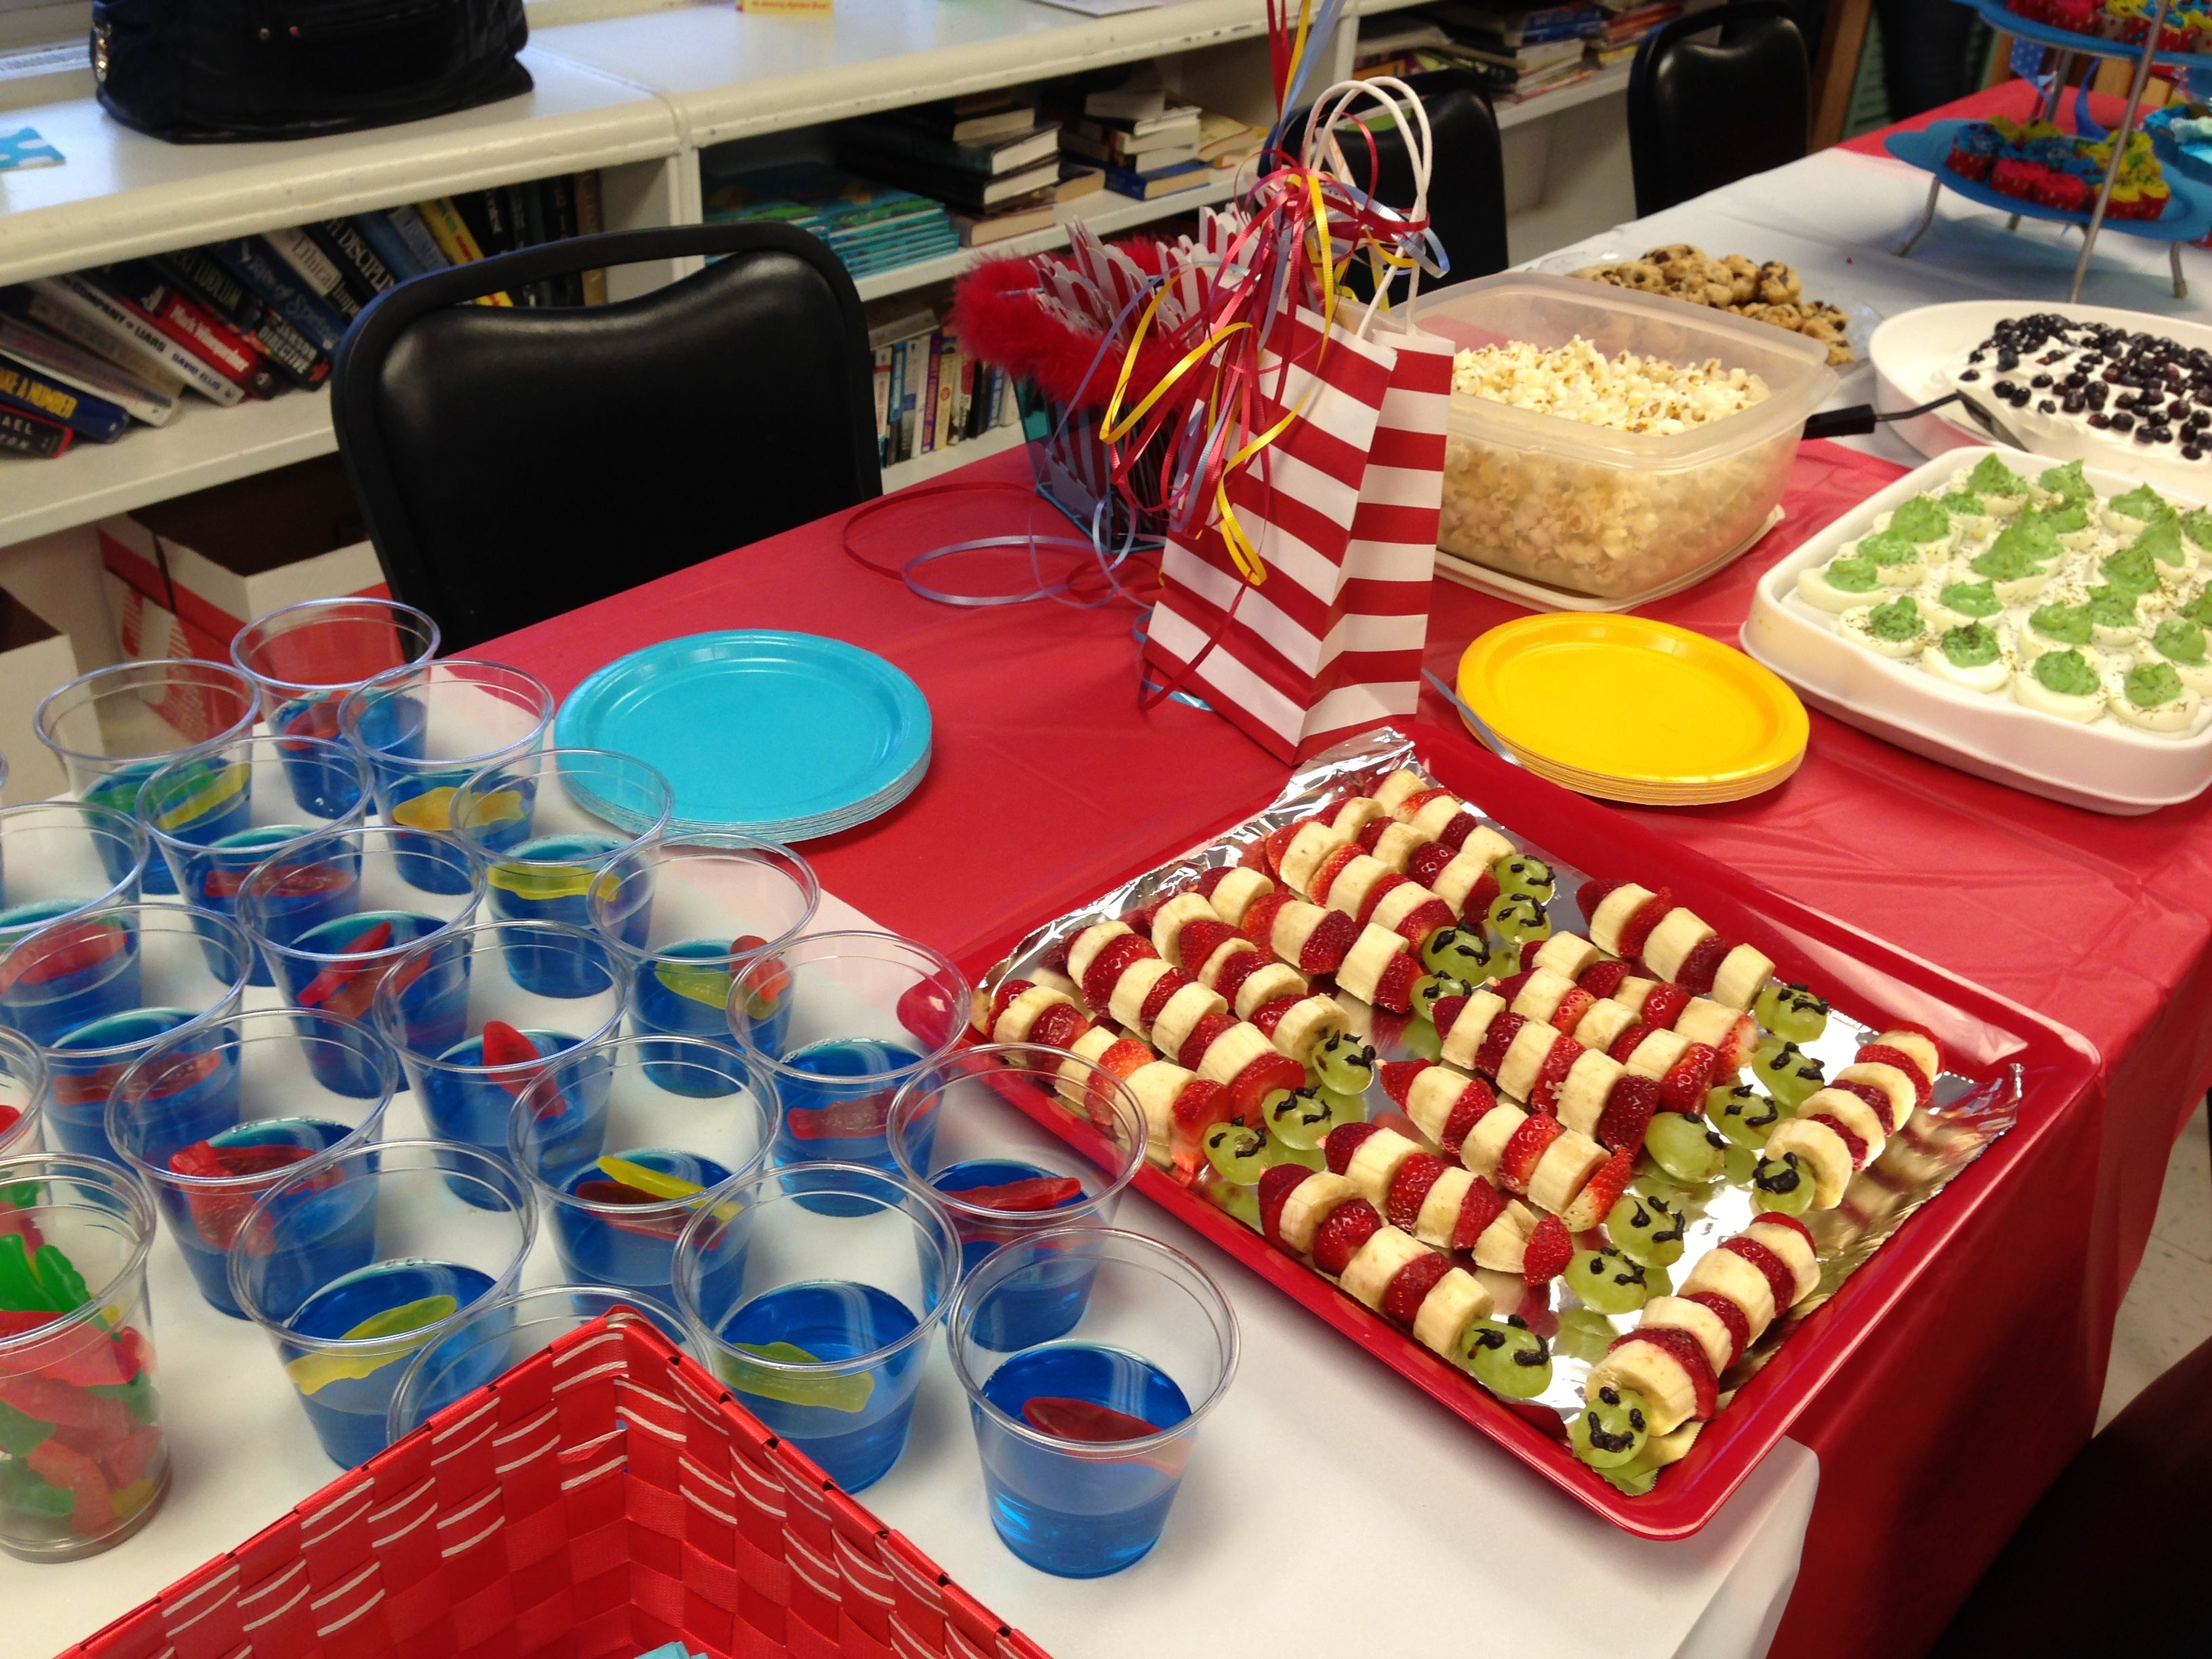 Fun Dr. Suess themed snacks! Blue jello and Swedish fish for \